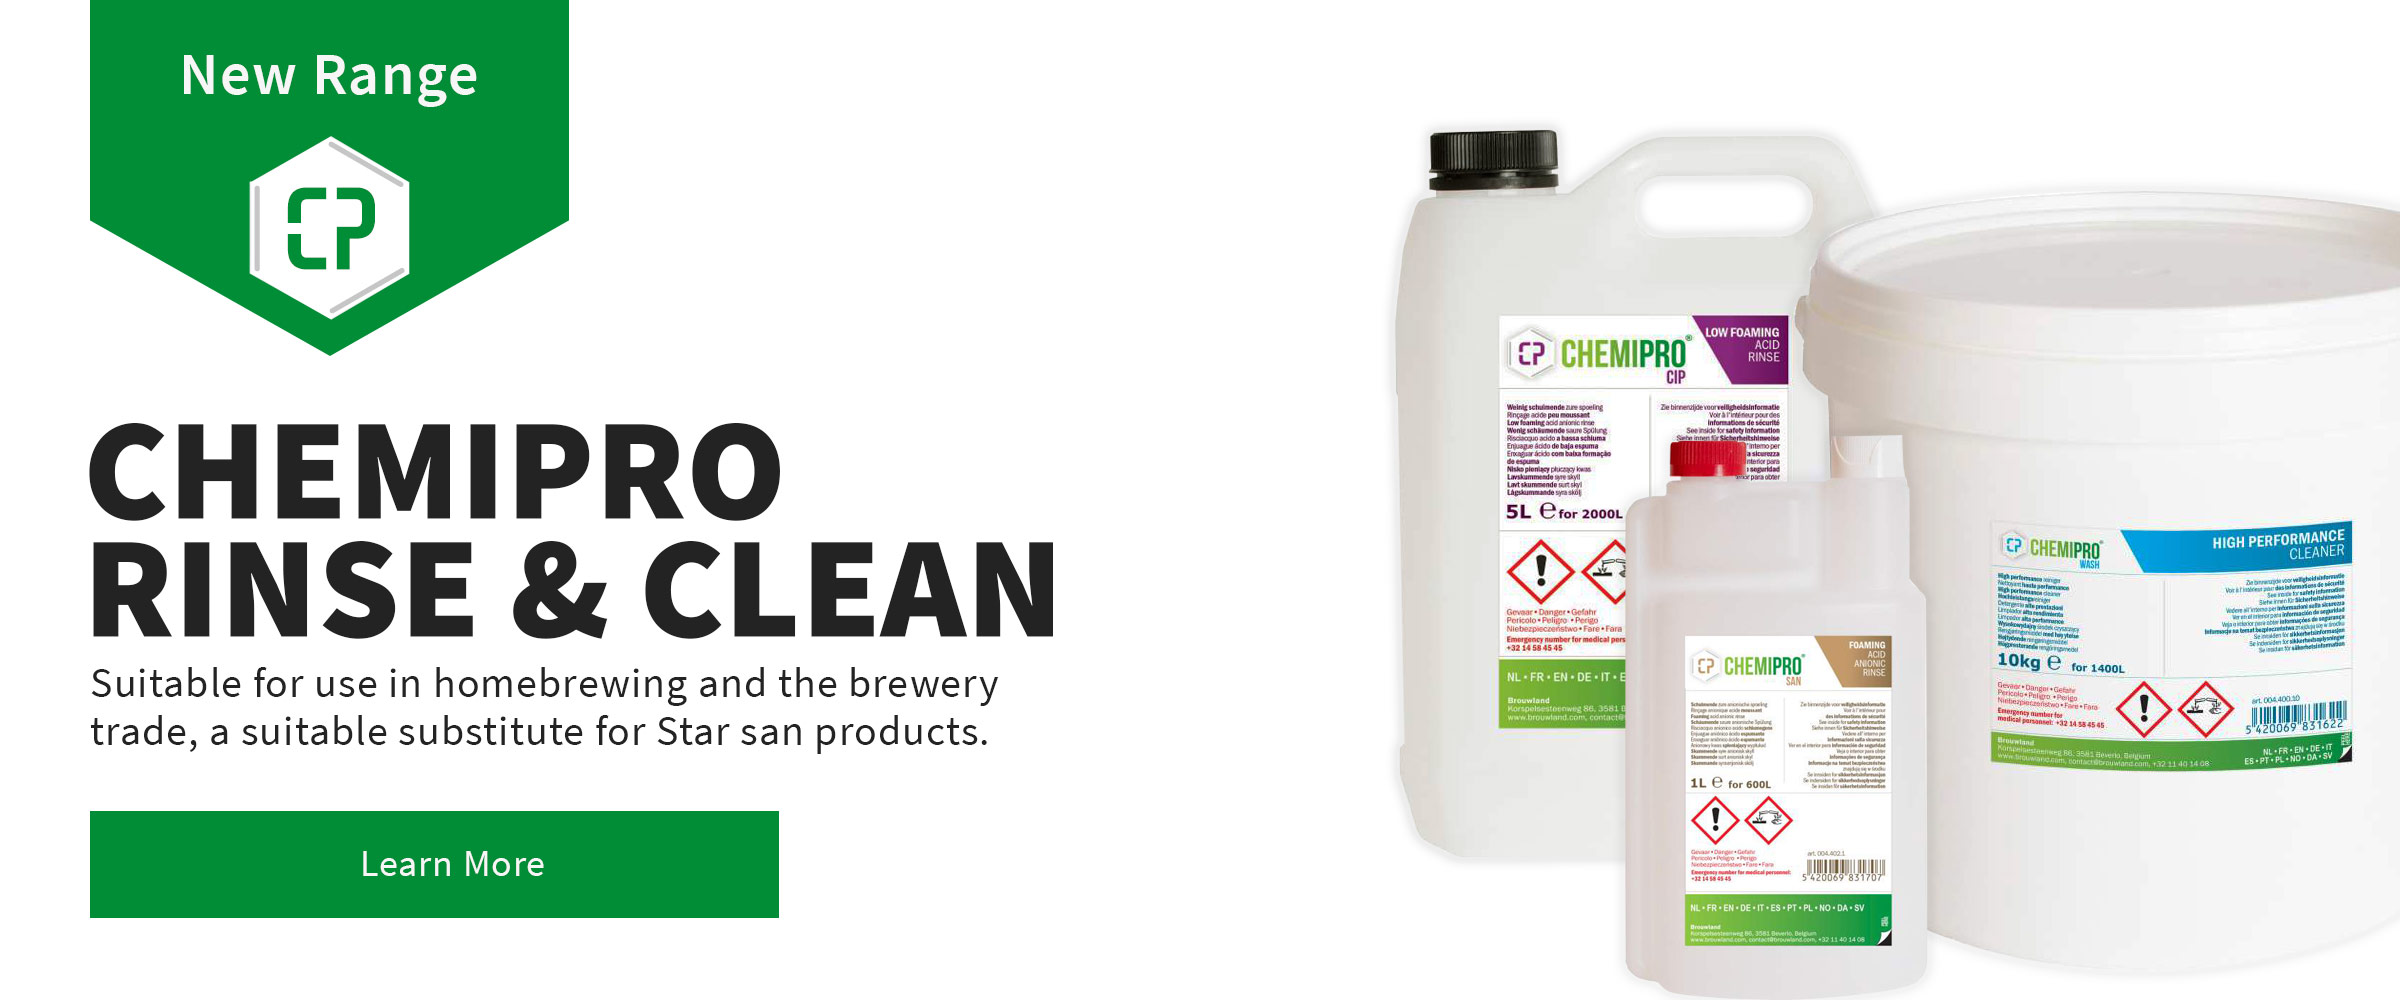 Chemipro Cleaning Products